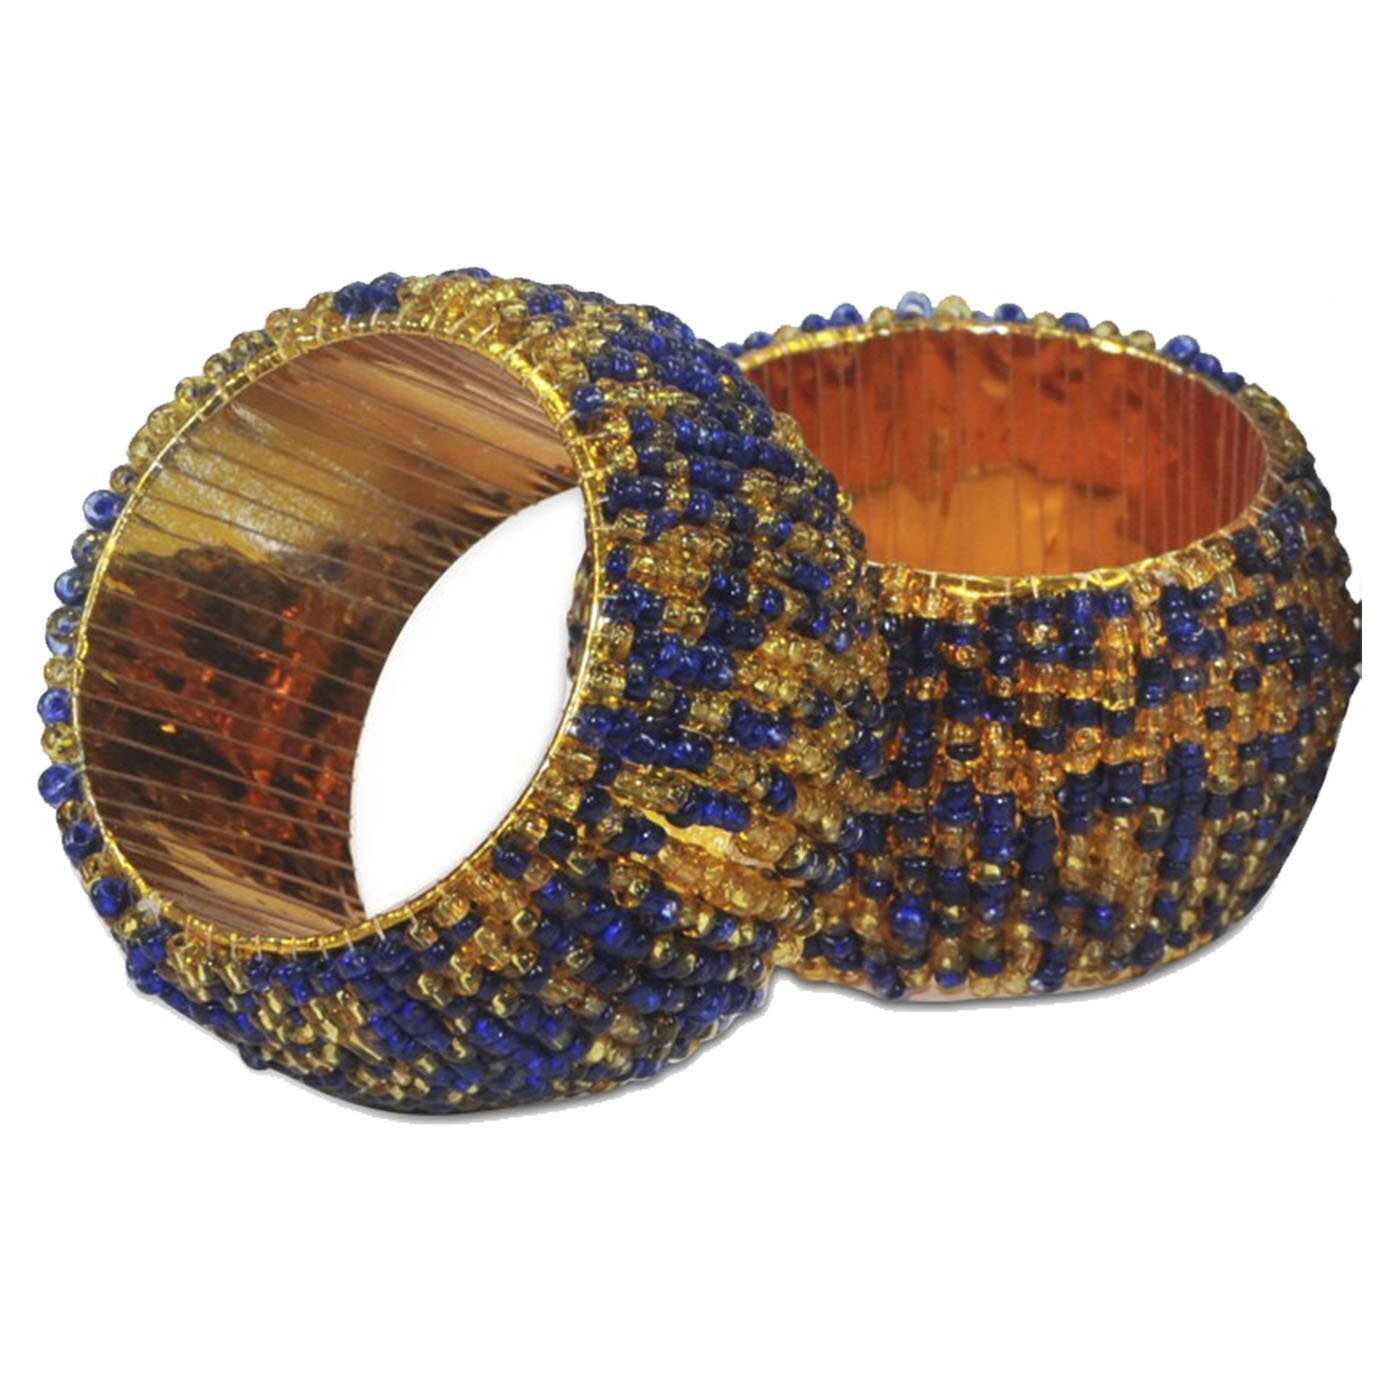 (2) - DakshCraft Blue & Golden Beaded Napkin Rings - Set of 2, Table Accessories Item & Perfect for Dining Decor - Dia - 3.8cm 2  B01I31TNHS